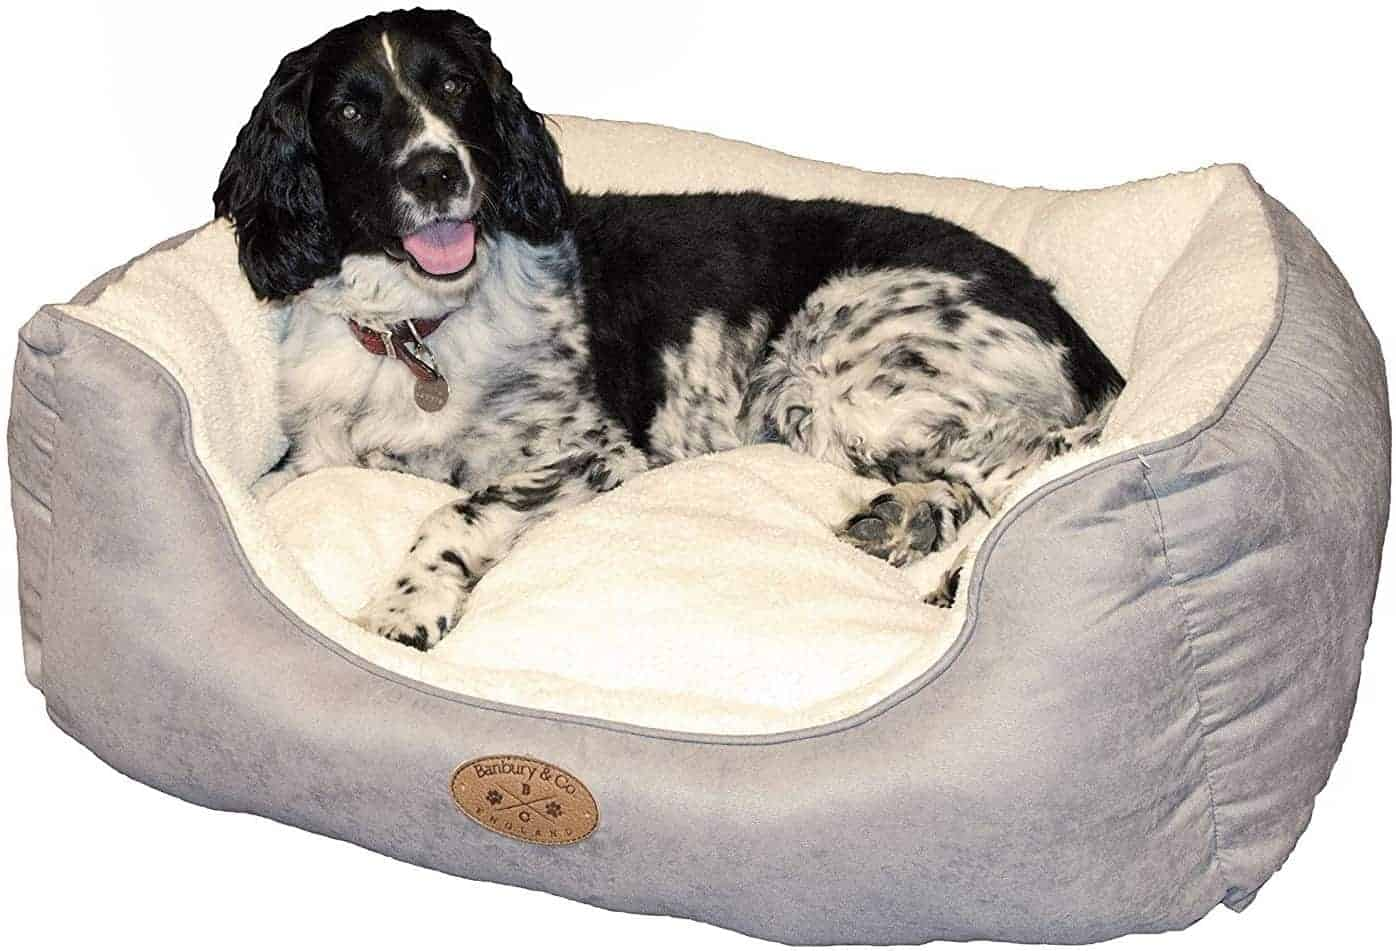 Best Luxury Dog Bed – Banbury